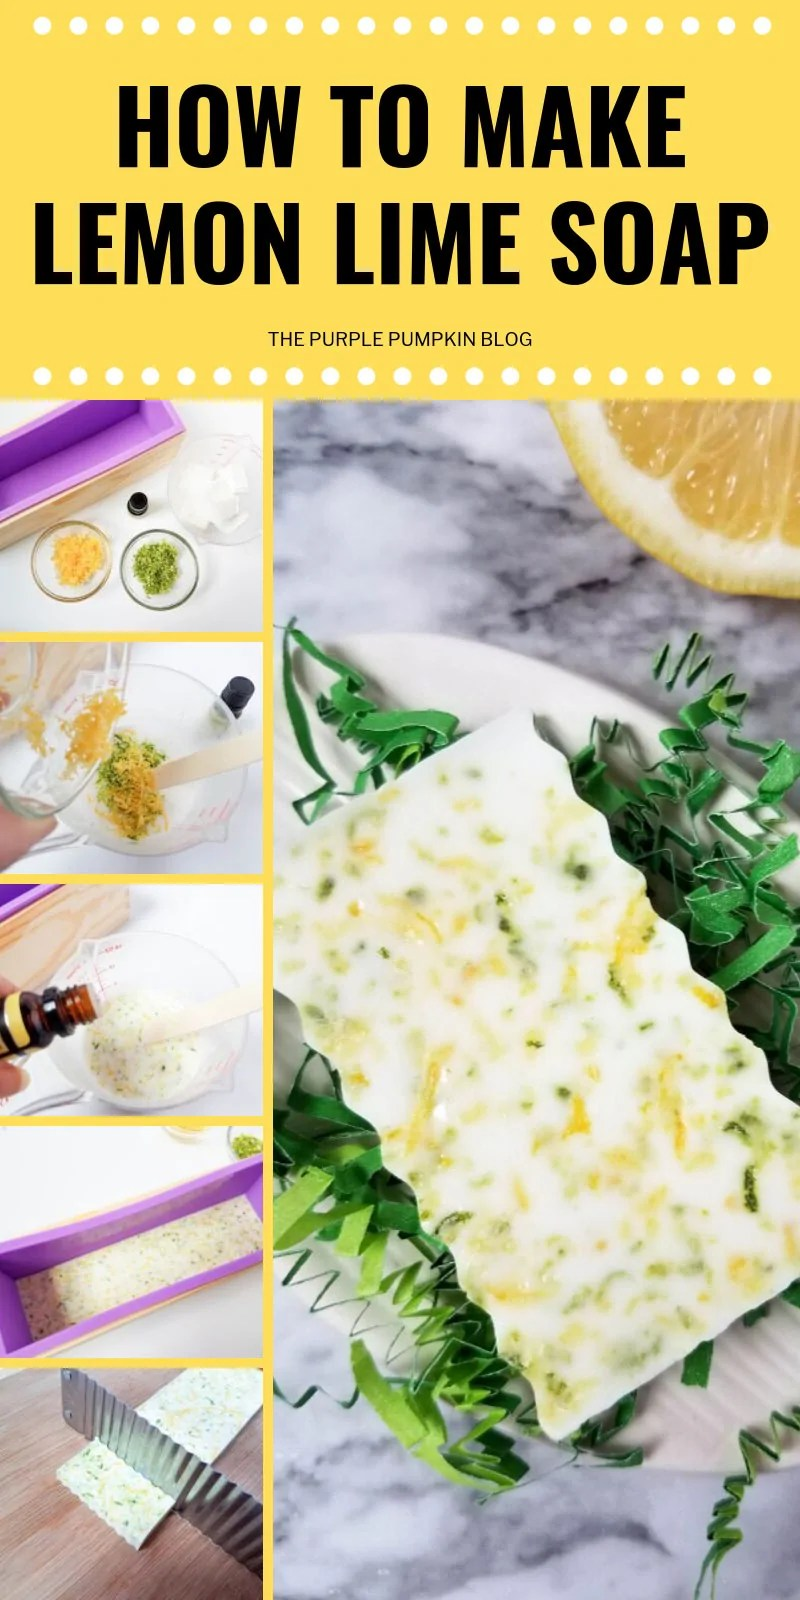 collage of images demonstrating how to make lemon lime soap bars